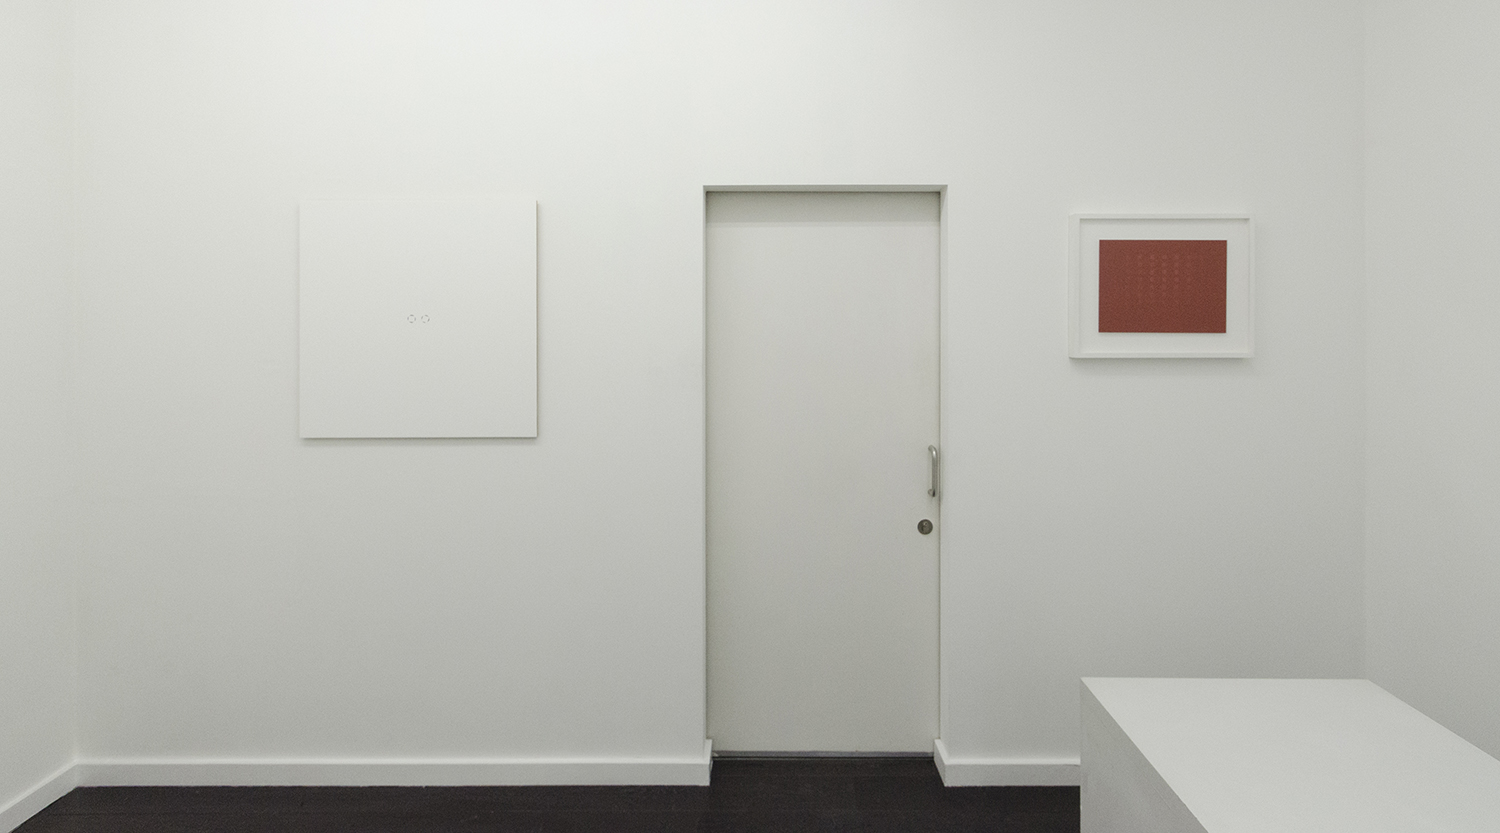 What's Yours is Mine by Jill Baroff and Stefana McClure at Bartha Contemporary London